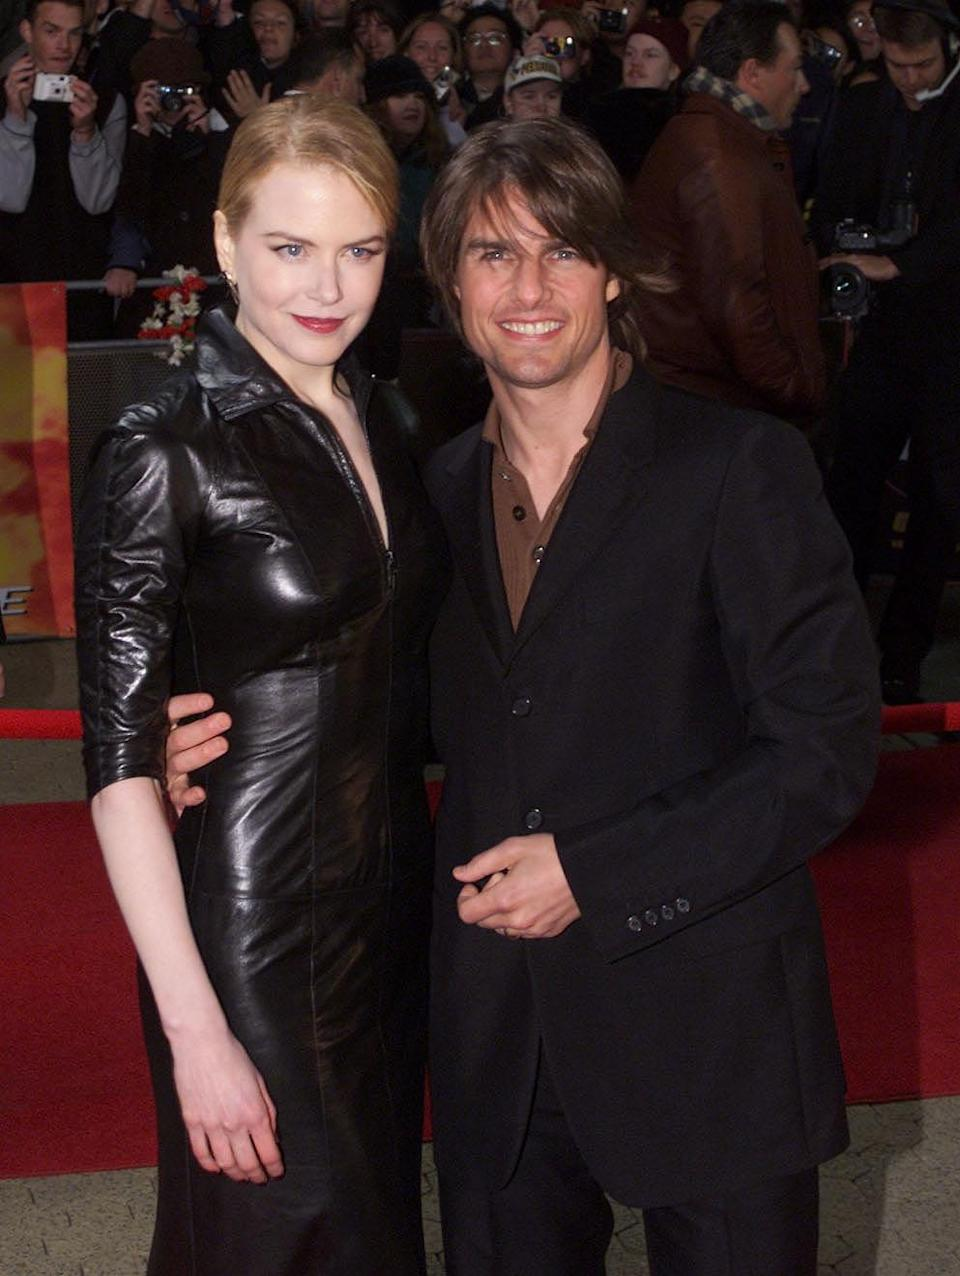 Kidman and Cruise were married from December 1990 to August 2001. Photo: Getty Images